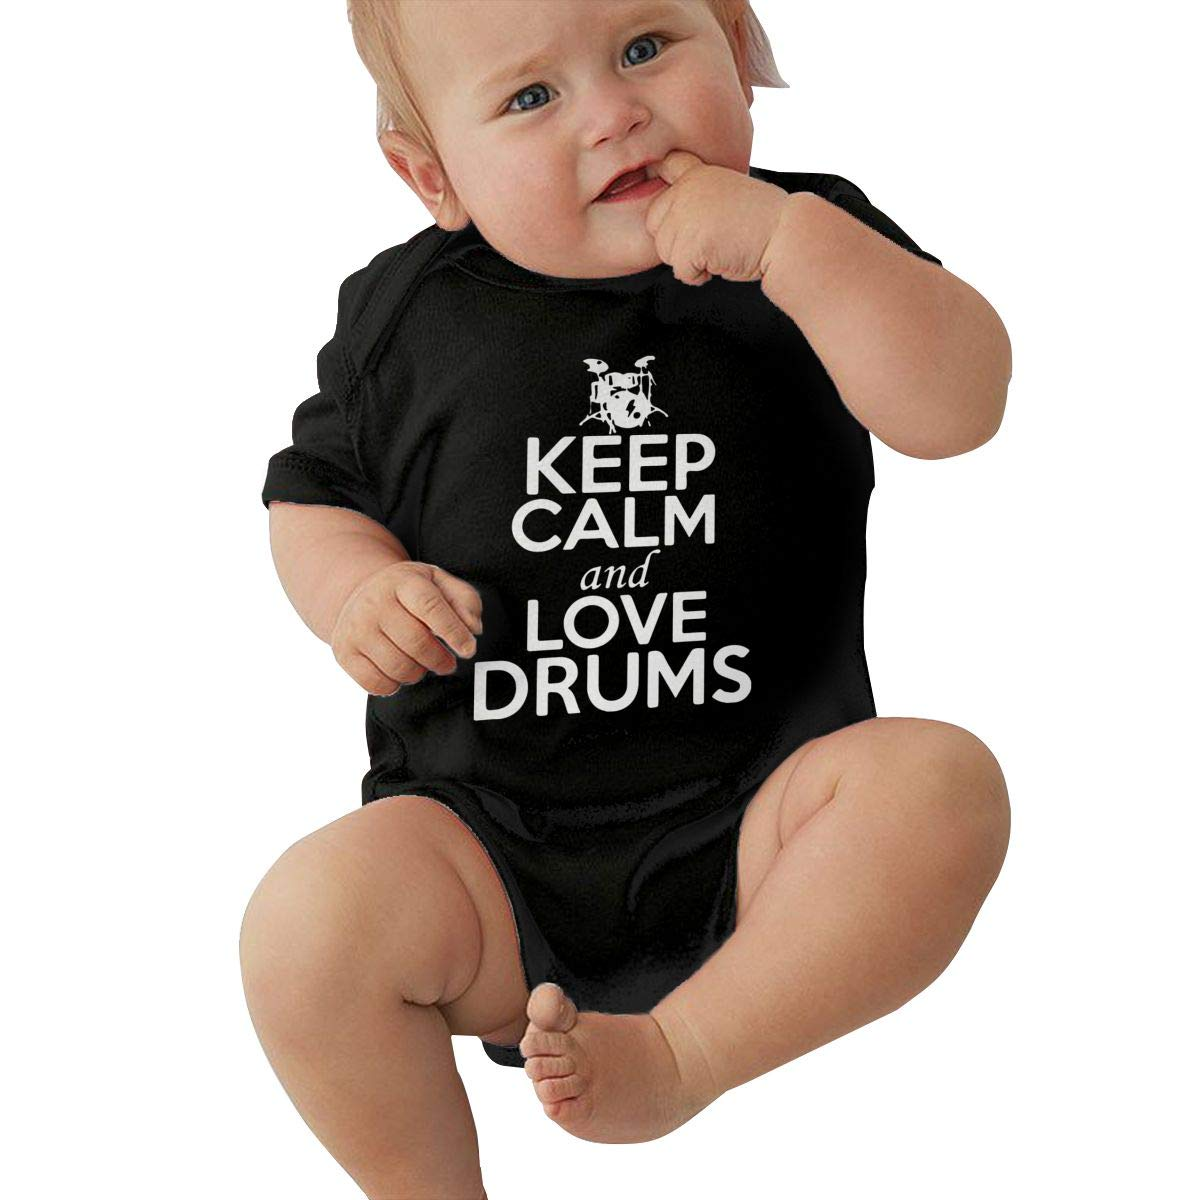 Keep Calm and Love Drums Printed Summer Infant Baby Girl Boys Short Sleeve Jumpsuits Playsuit Outfits Shirt